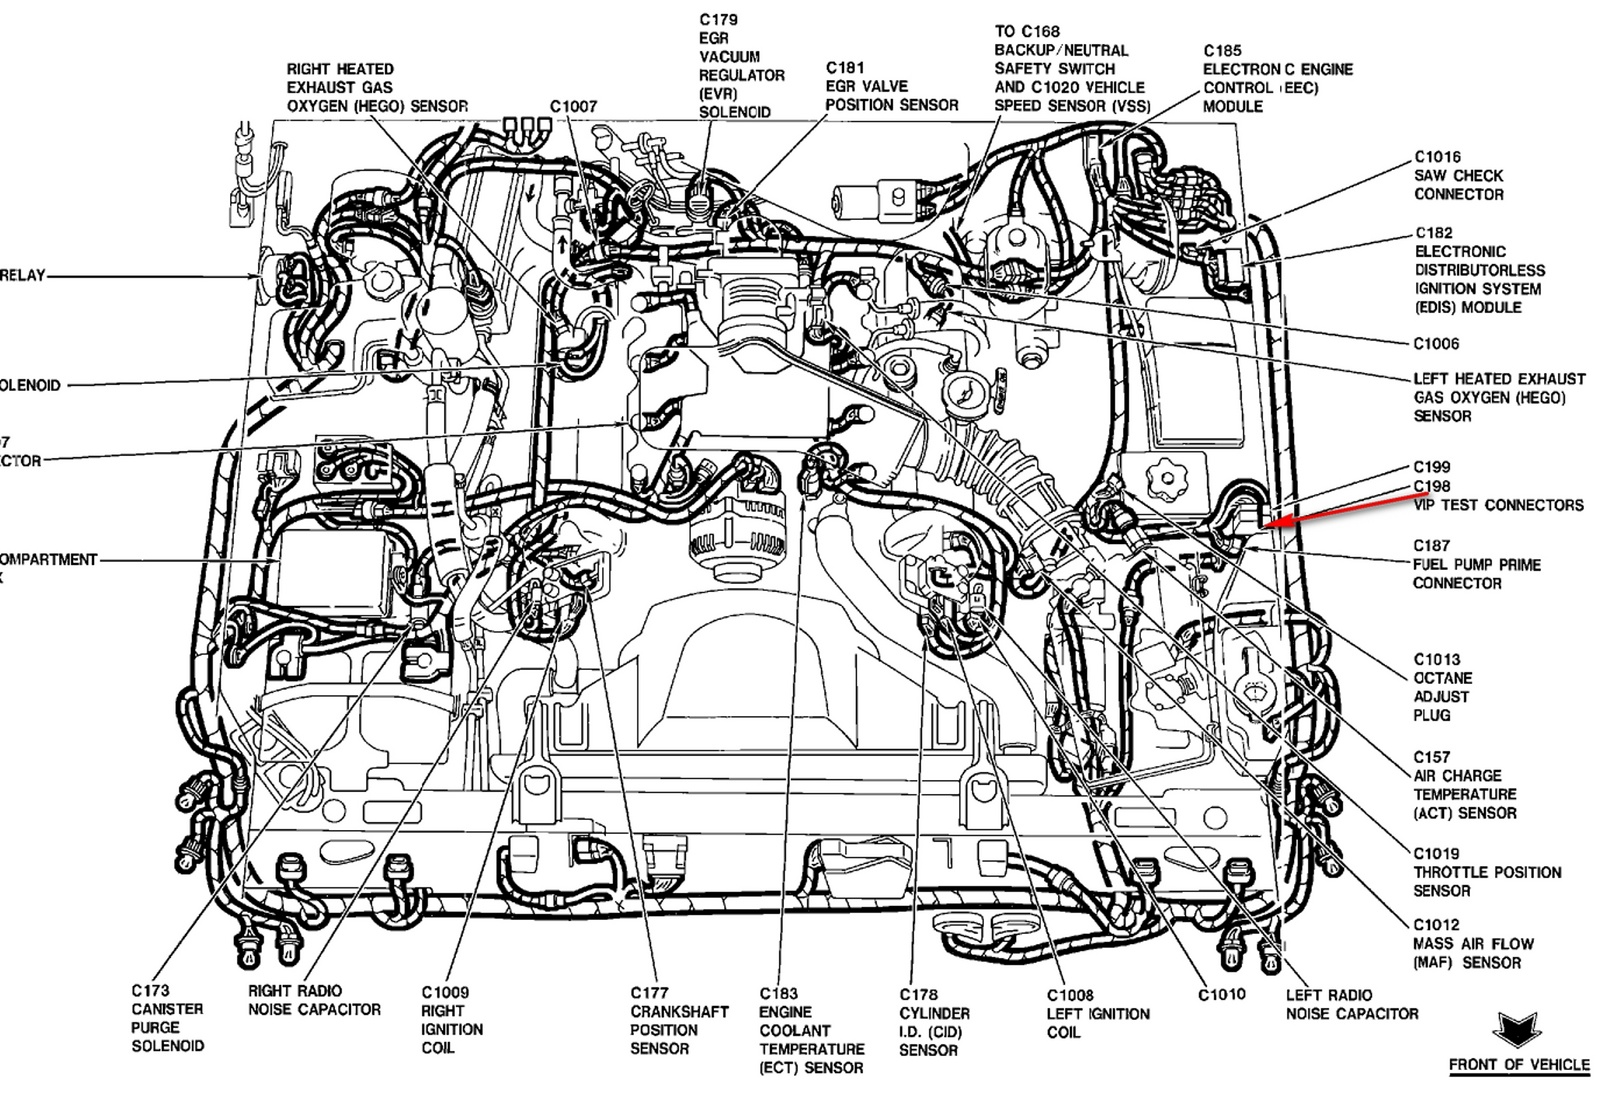 2002 saturn sl1 engine diagram coolant temperature sensor